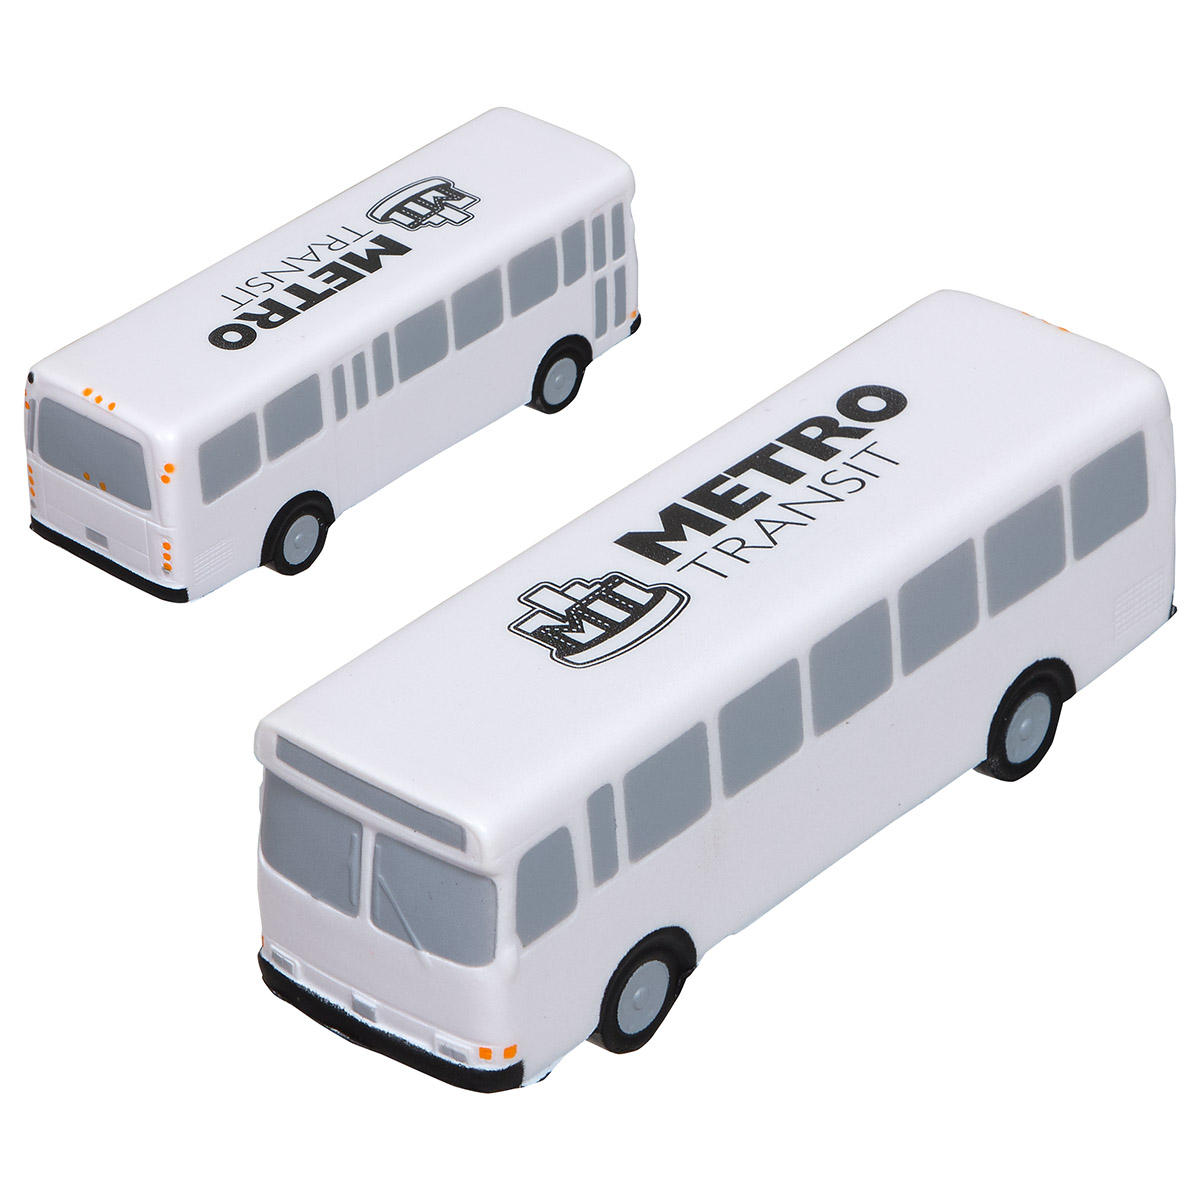 Metro Bus Stress Reliever, LTR-MB39, 1 Colour Imprint